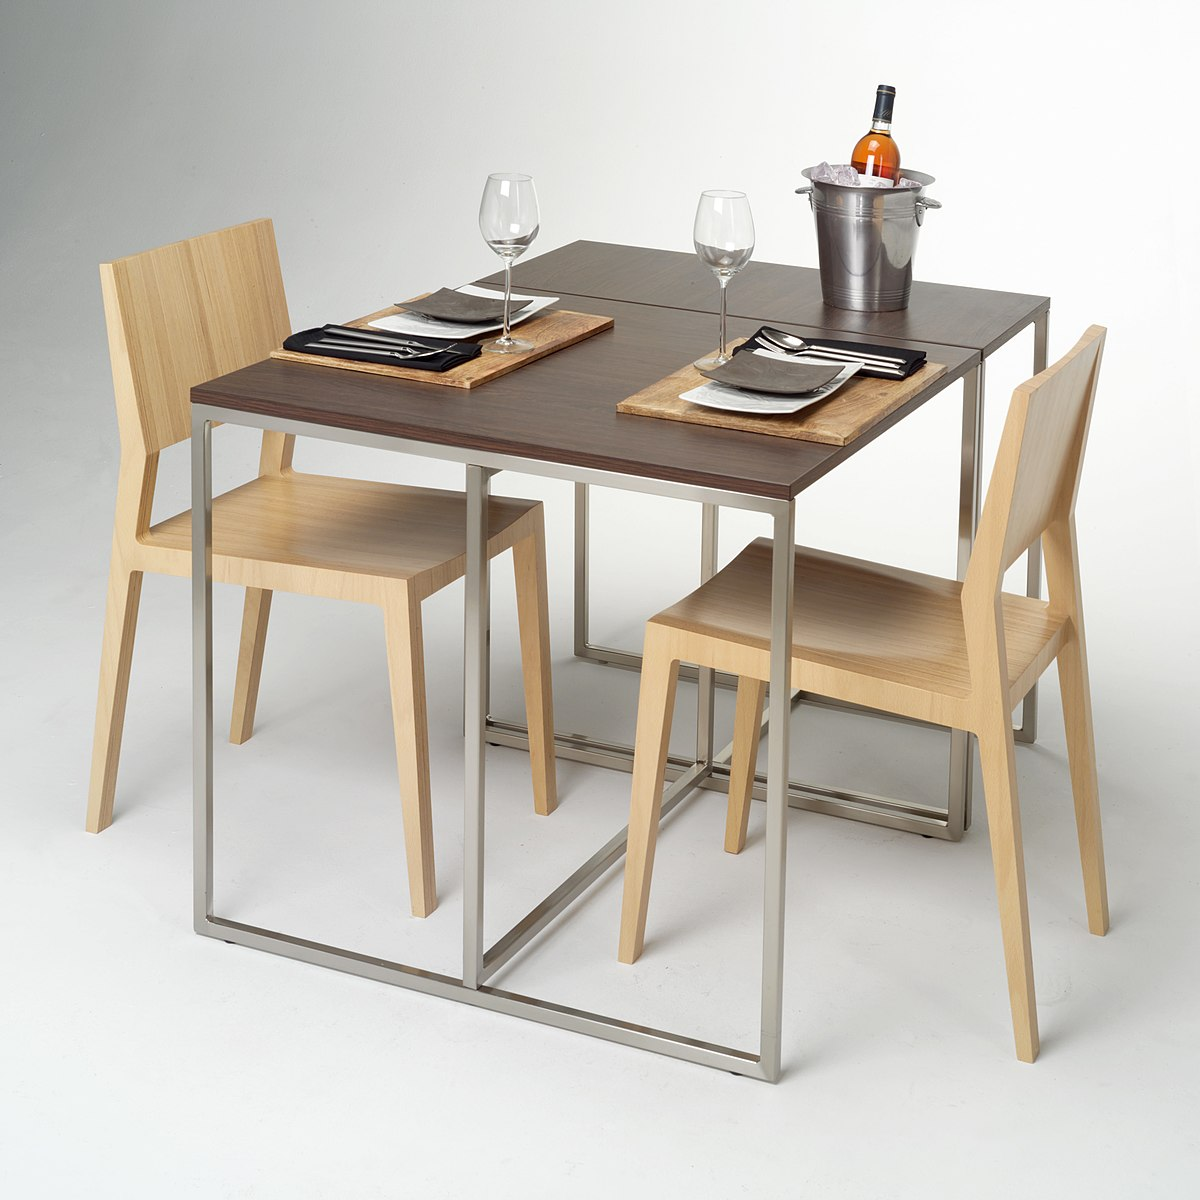 Furniture wikipedia for Dining furniture design